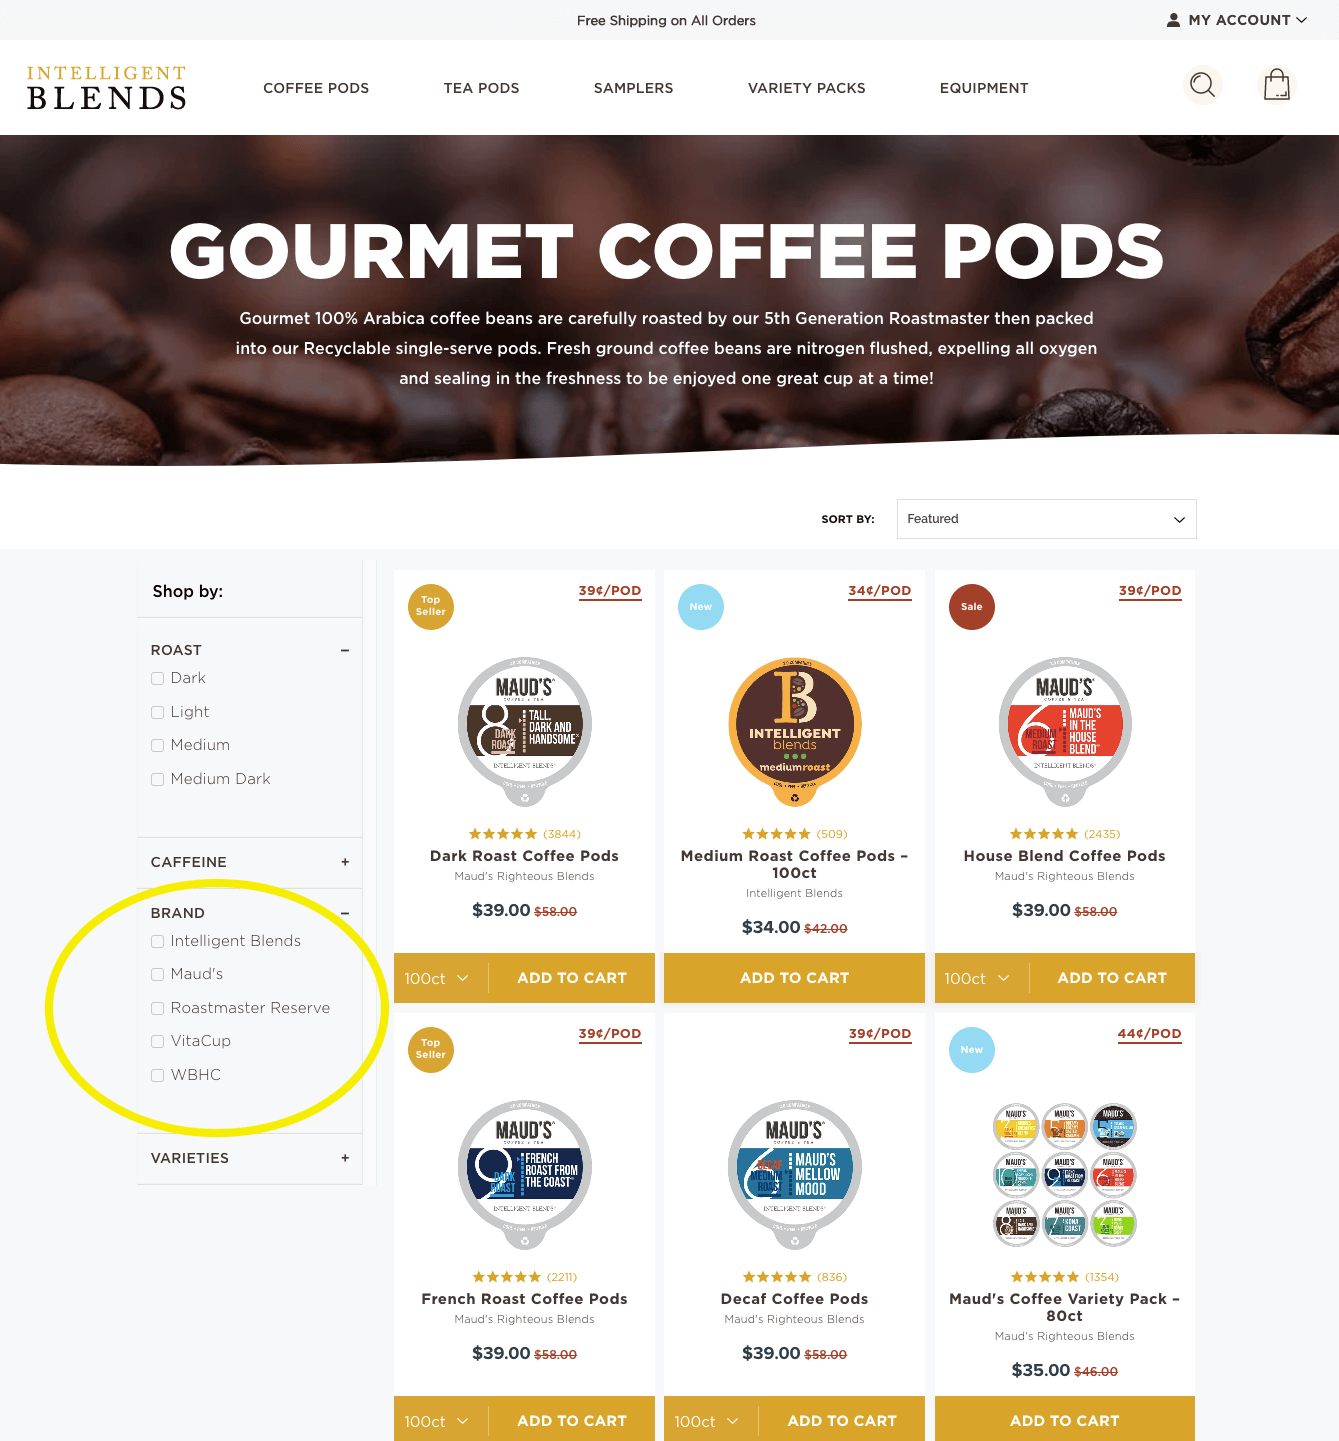 brand partnerships - intelligent blends brands